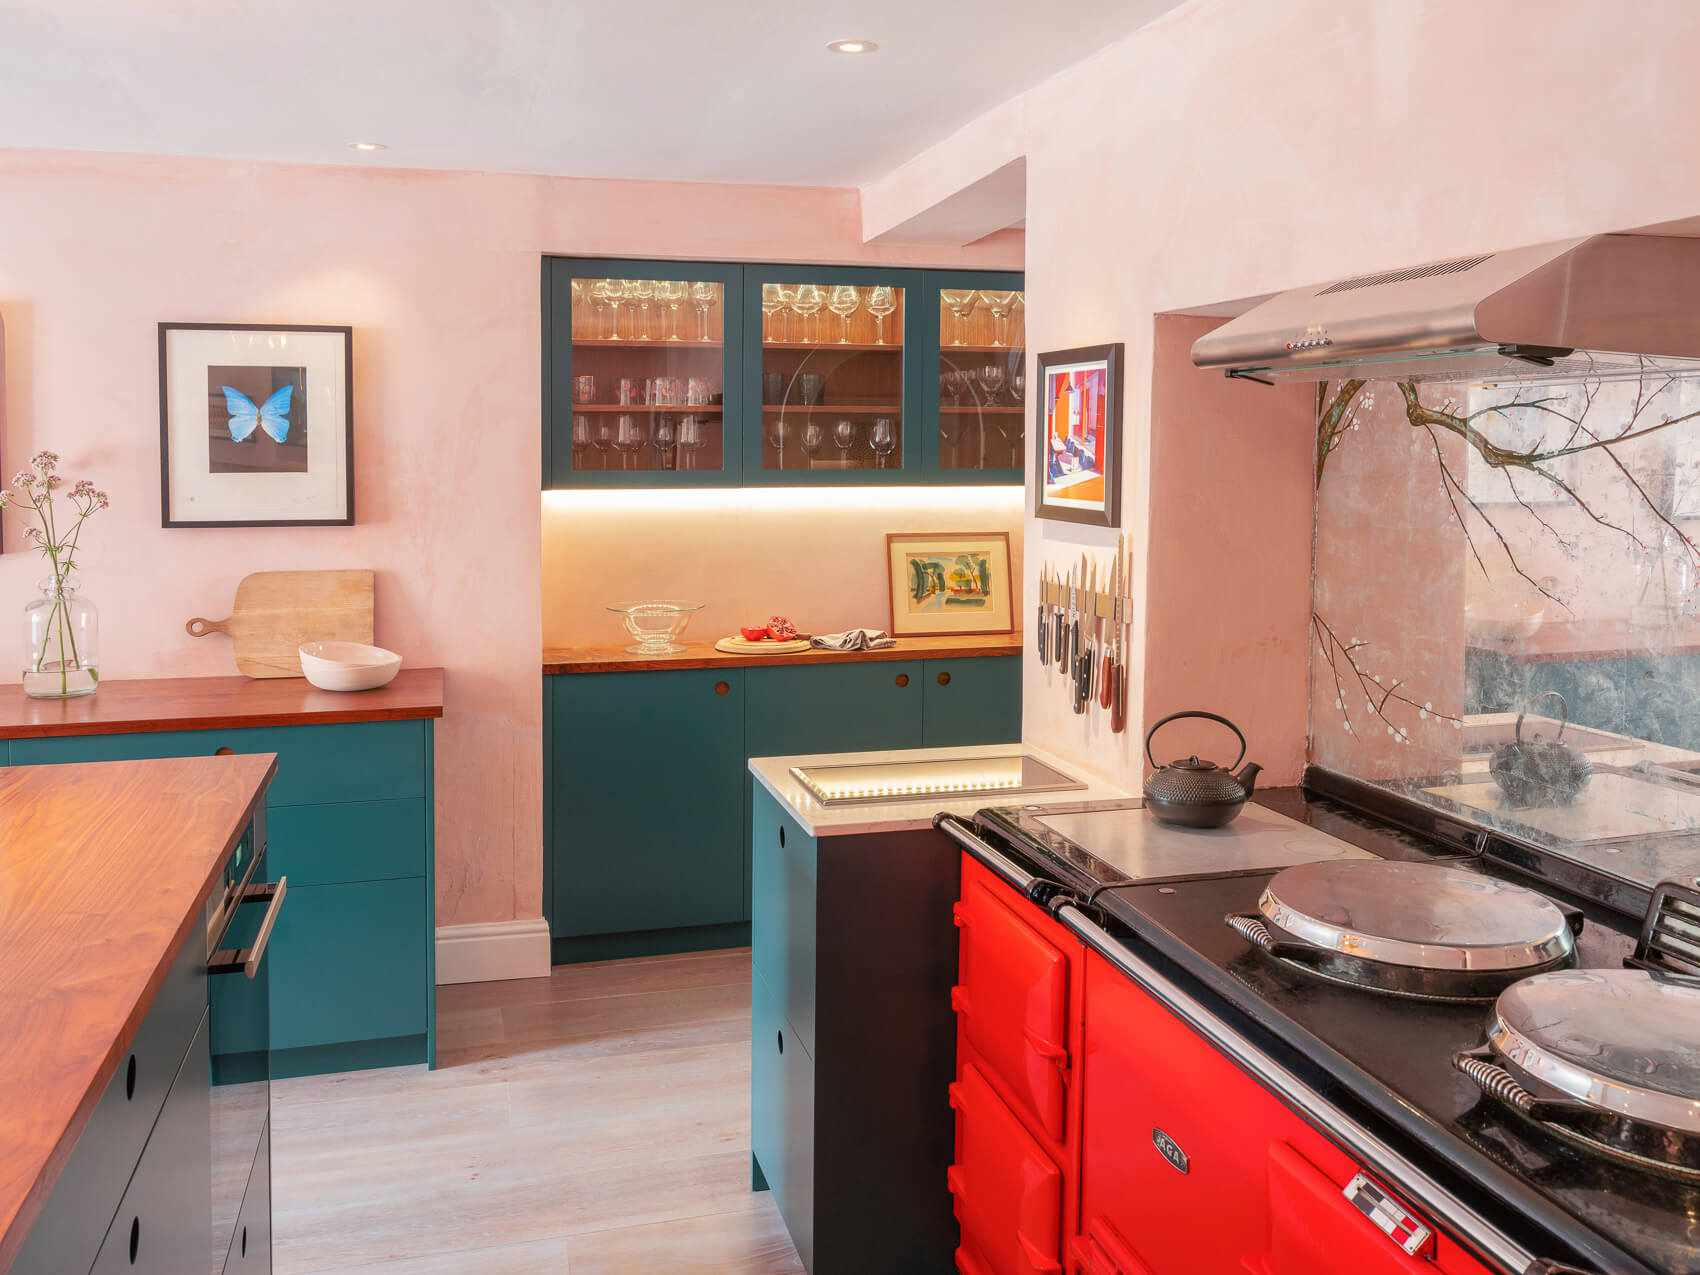 Pink, red, and teal kitchen